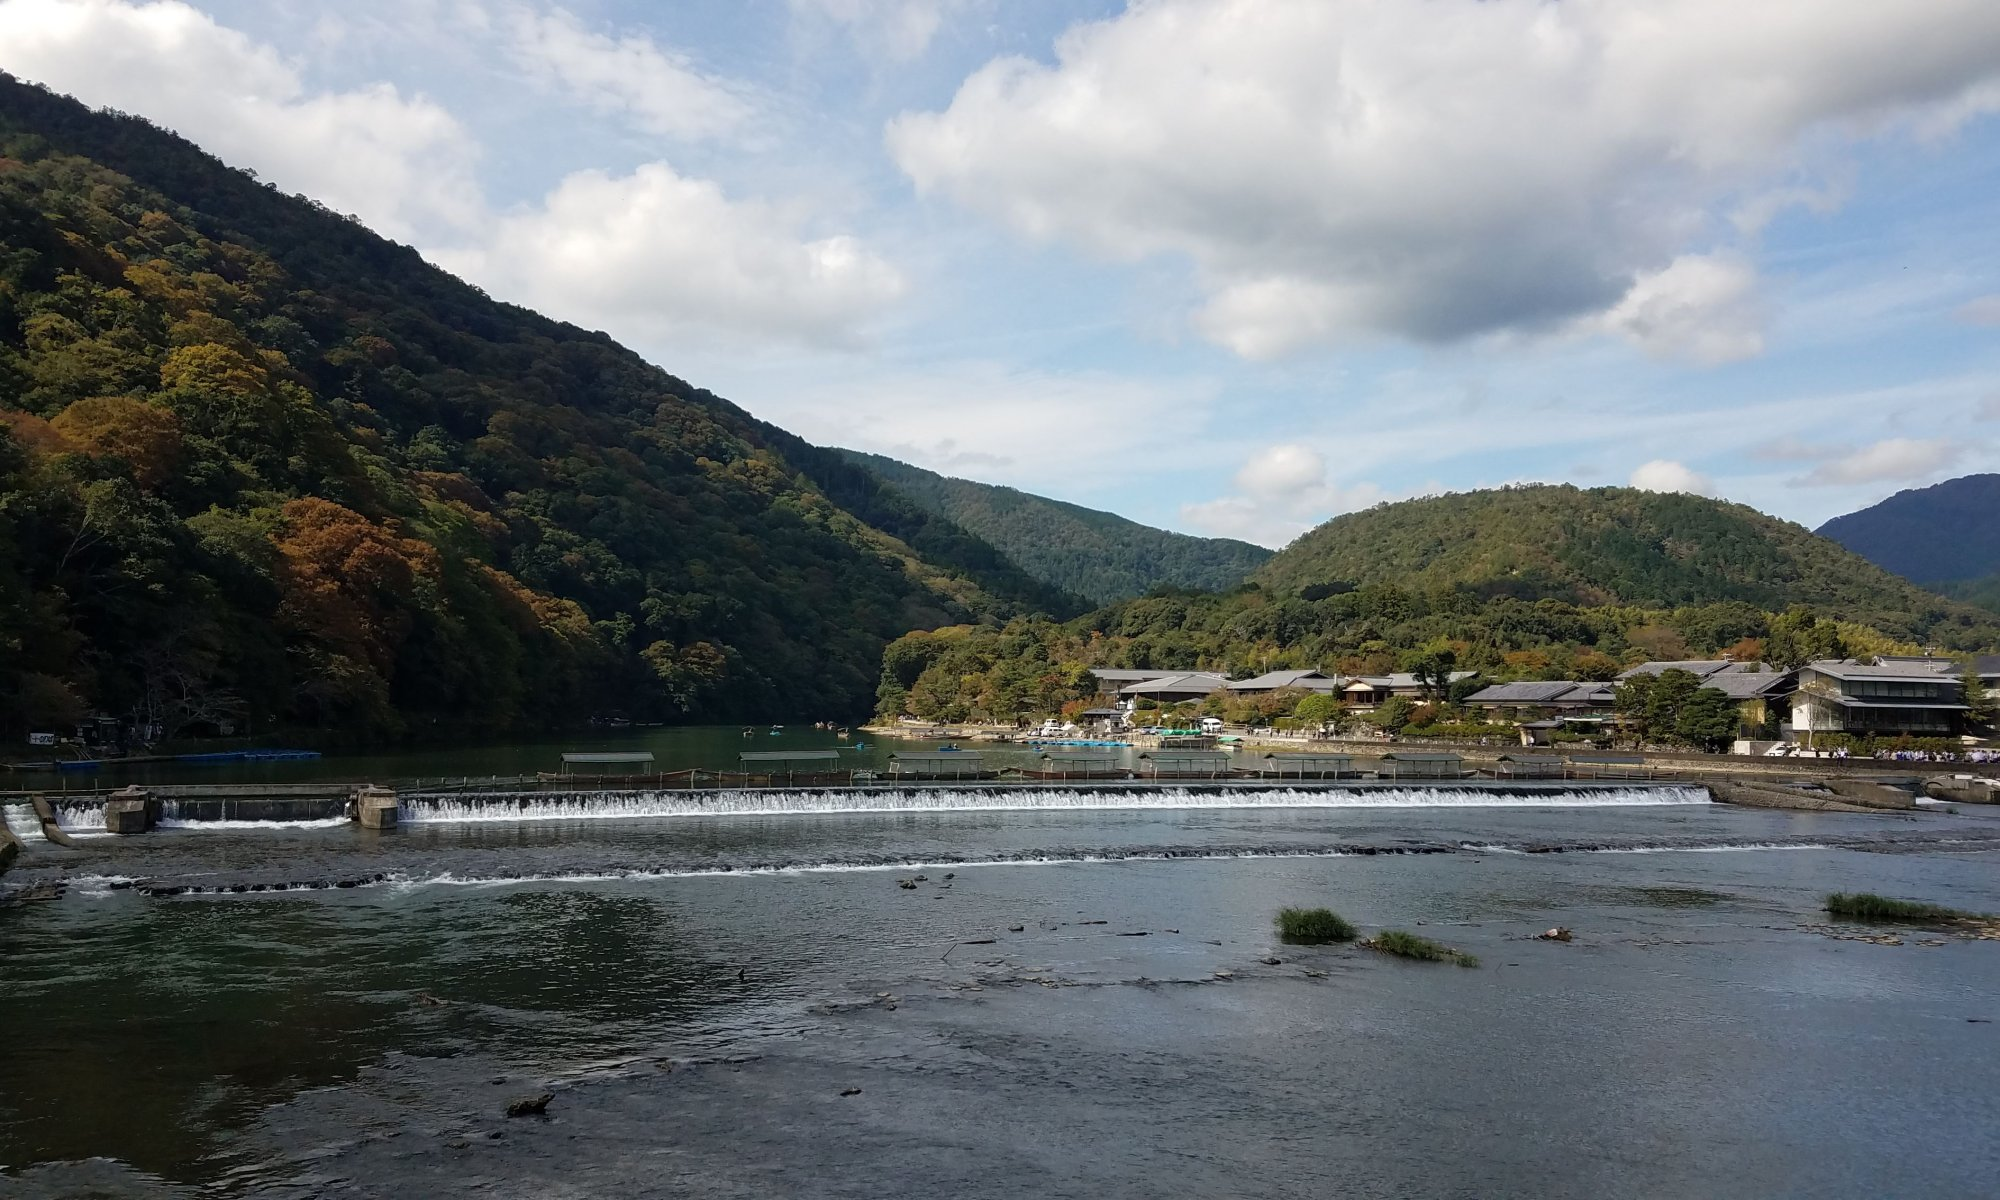 View from the Arashiyama Bridge - 10-23-2019